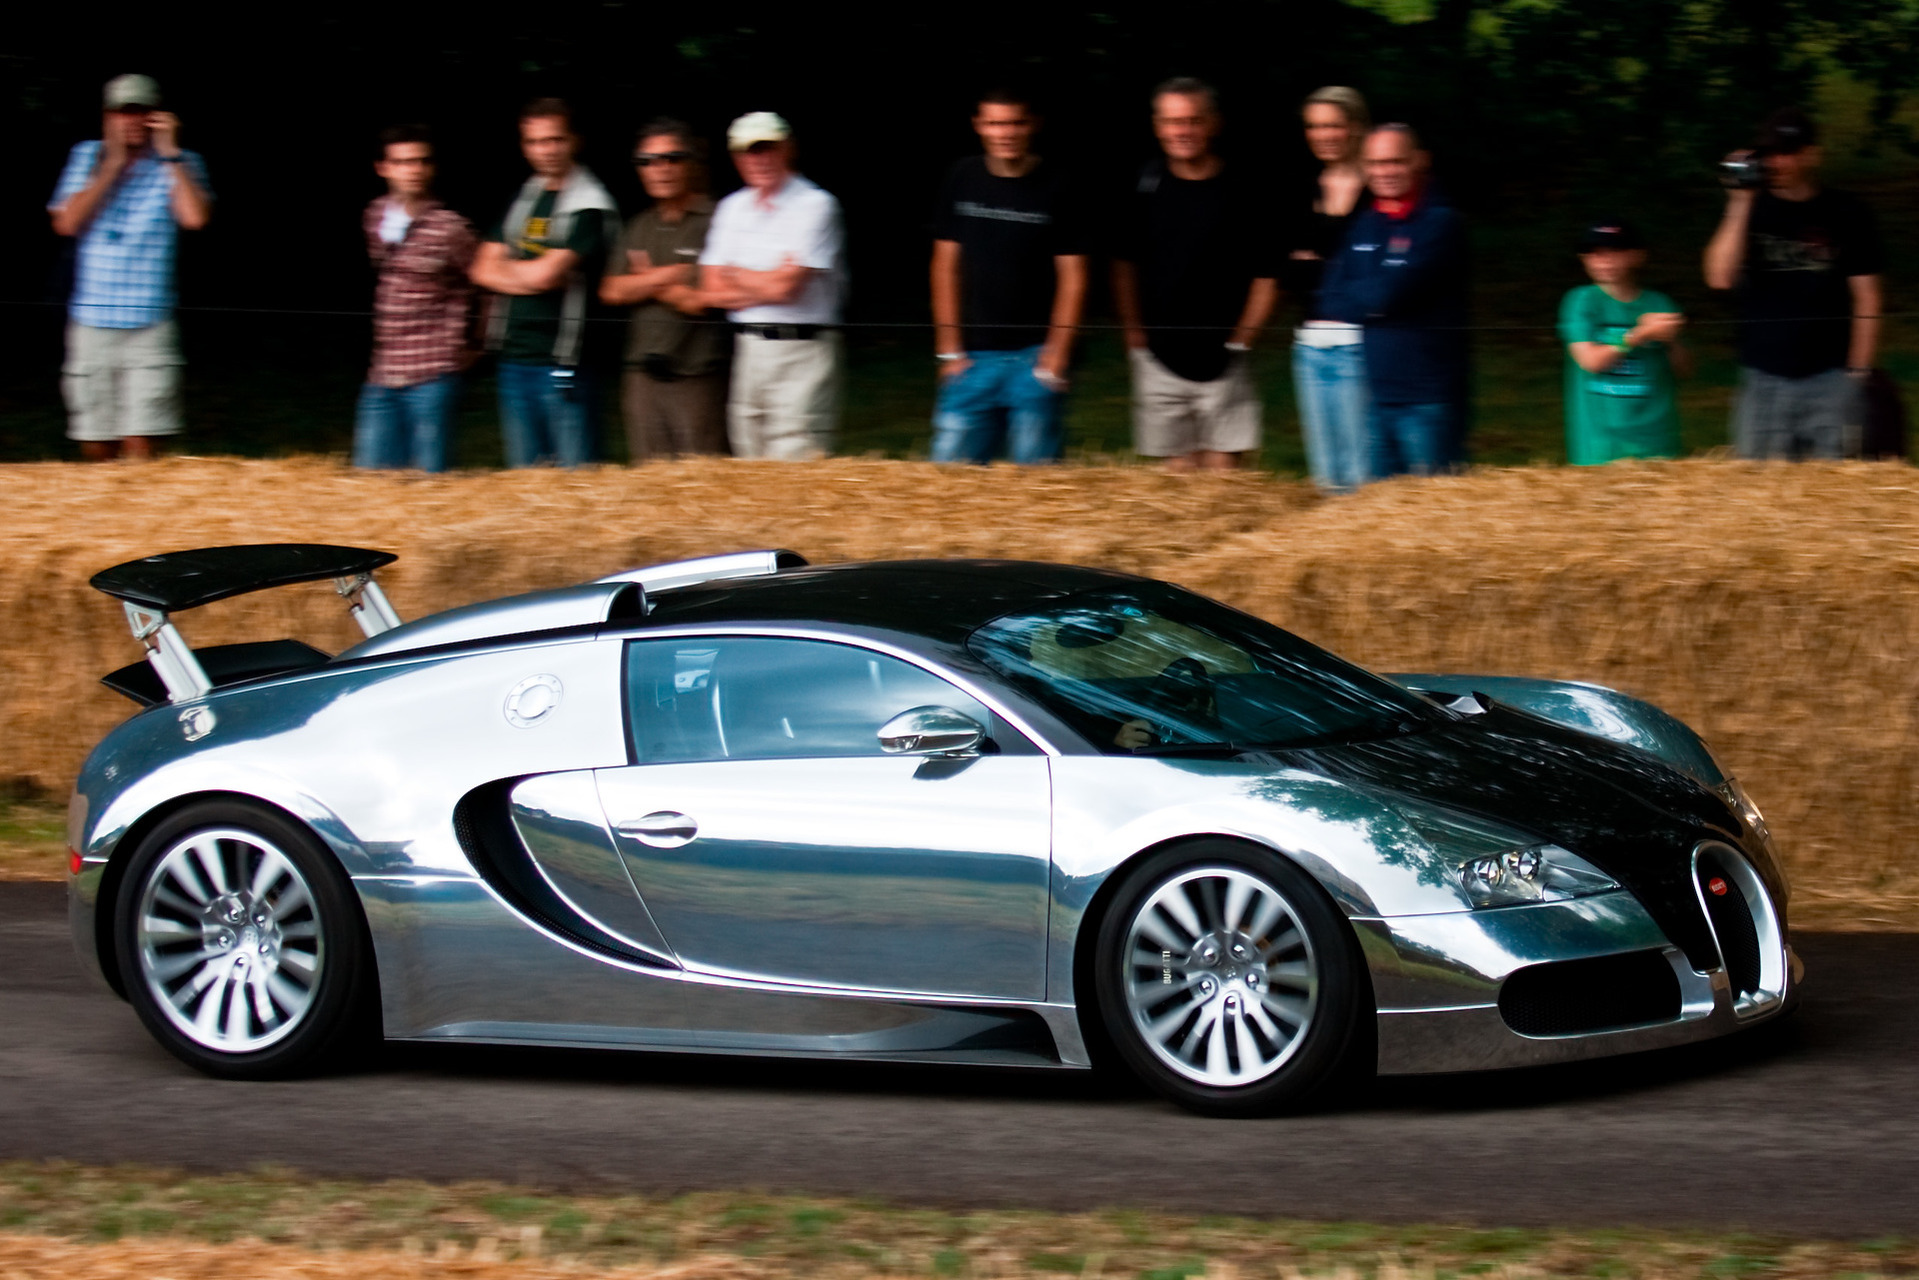 bugatti-veyron-pur-sang Modern Bugatti Veyron Price and Pictures Cars Trend